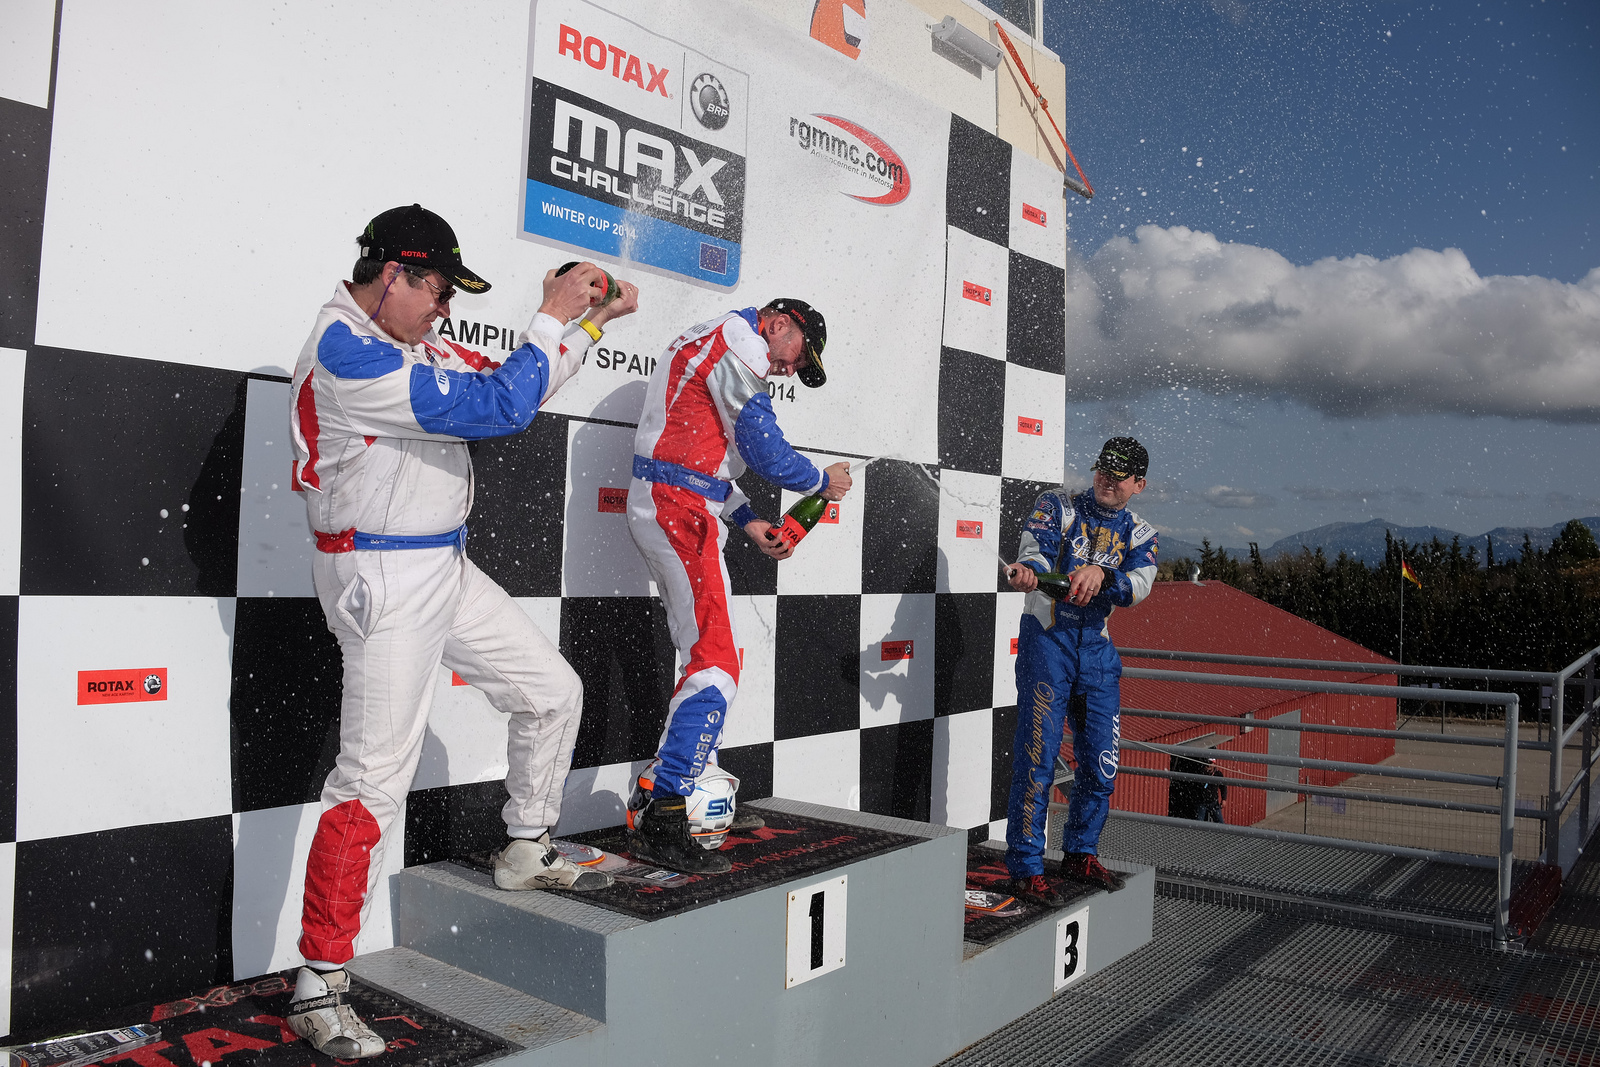 First race, first podium for Rotax Praga Kart Racing